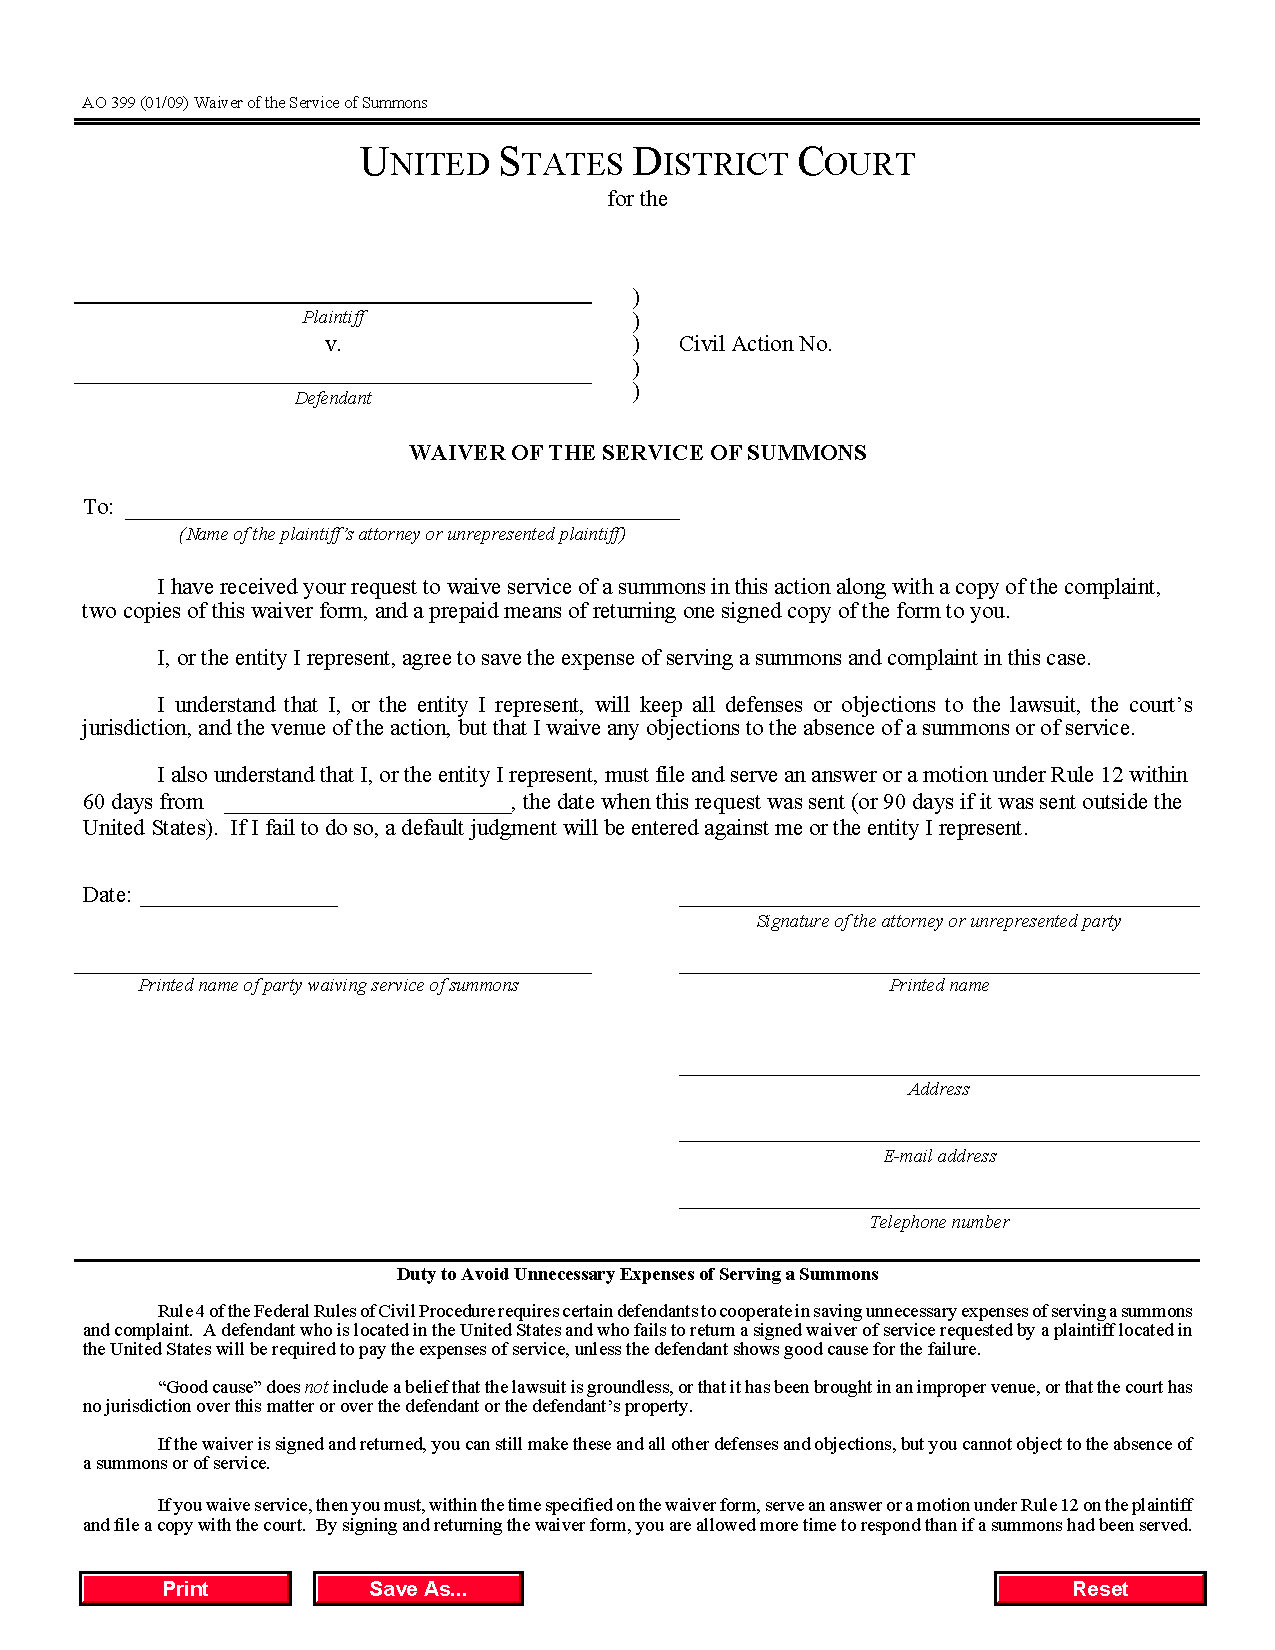 Form AO 399 Waiver of the Service of Summons